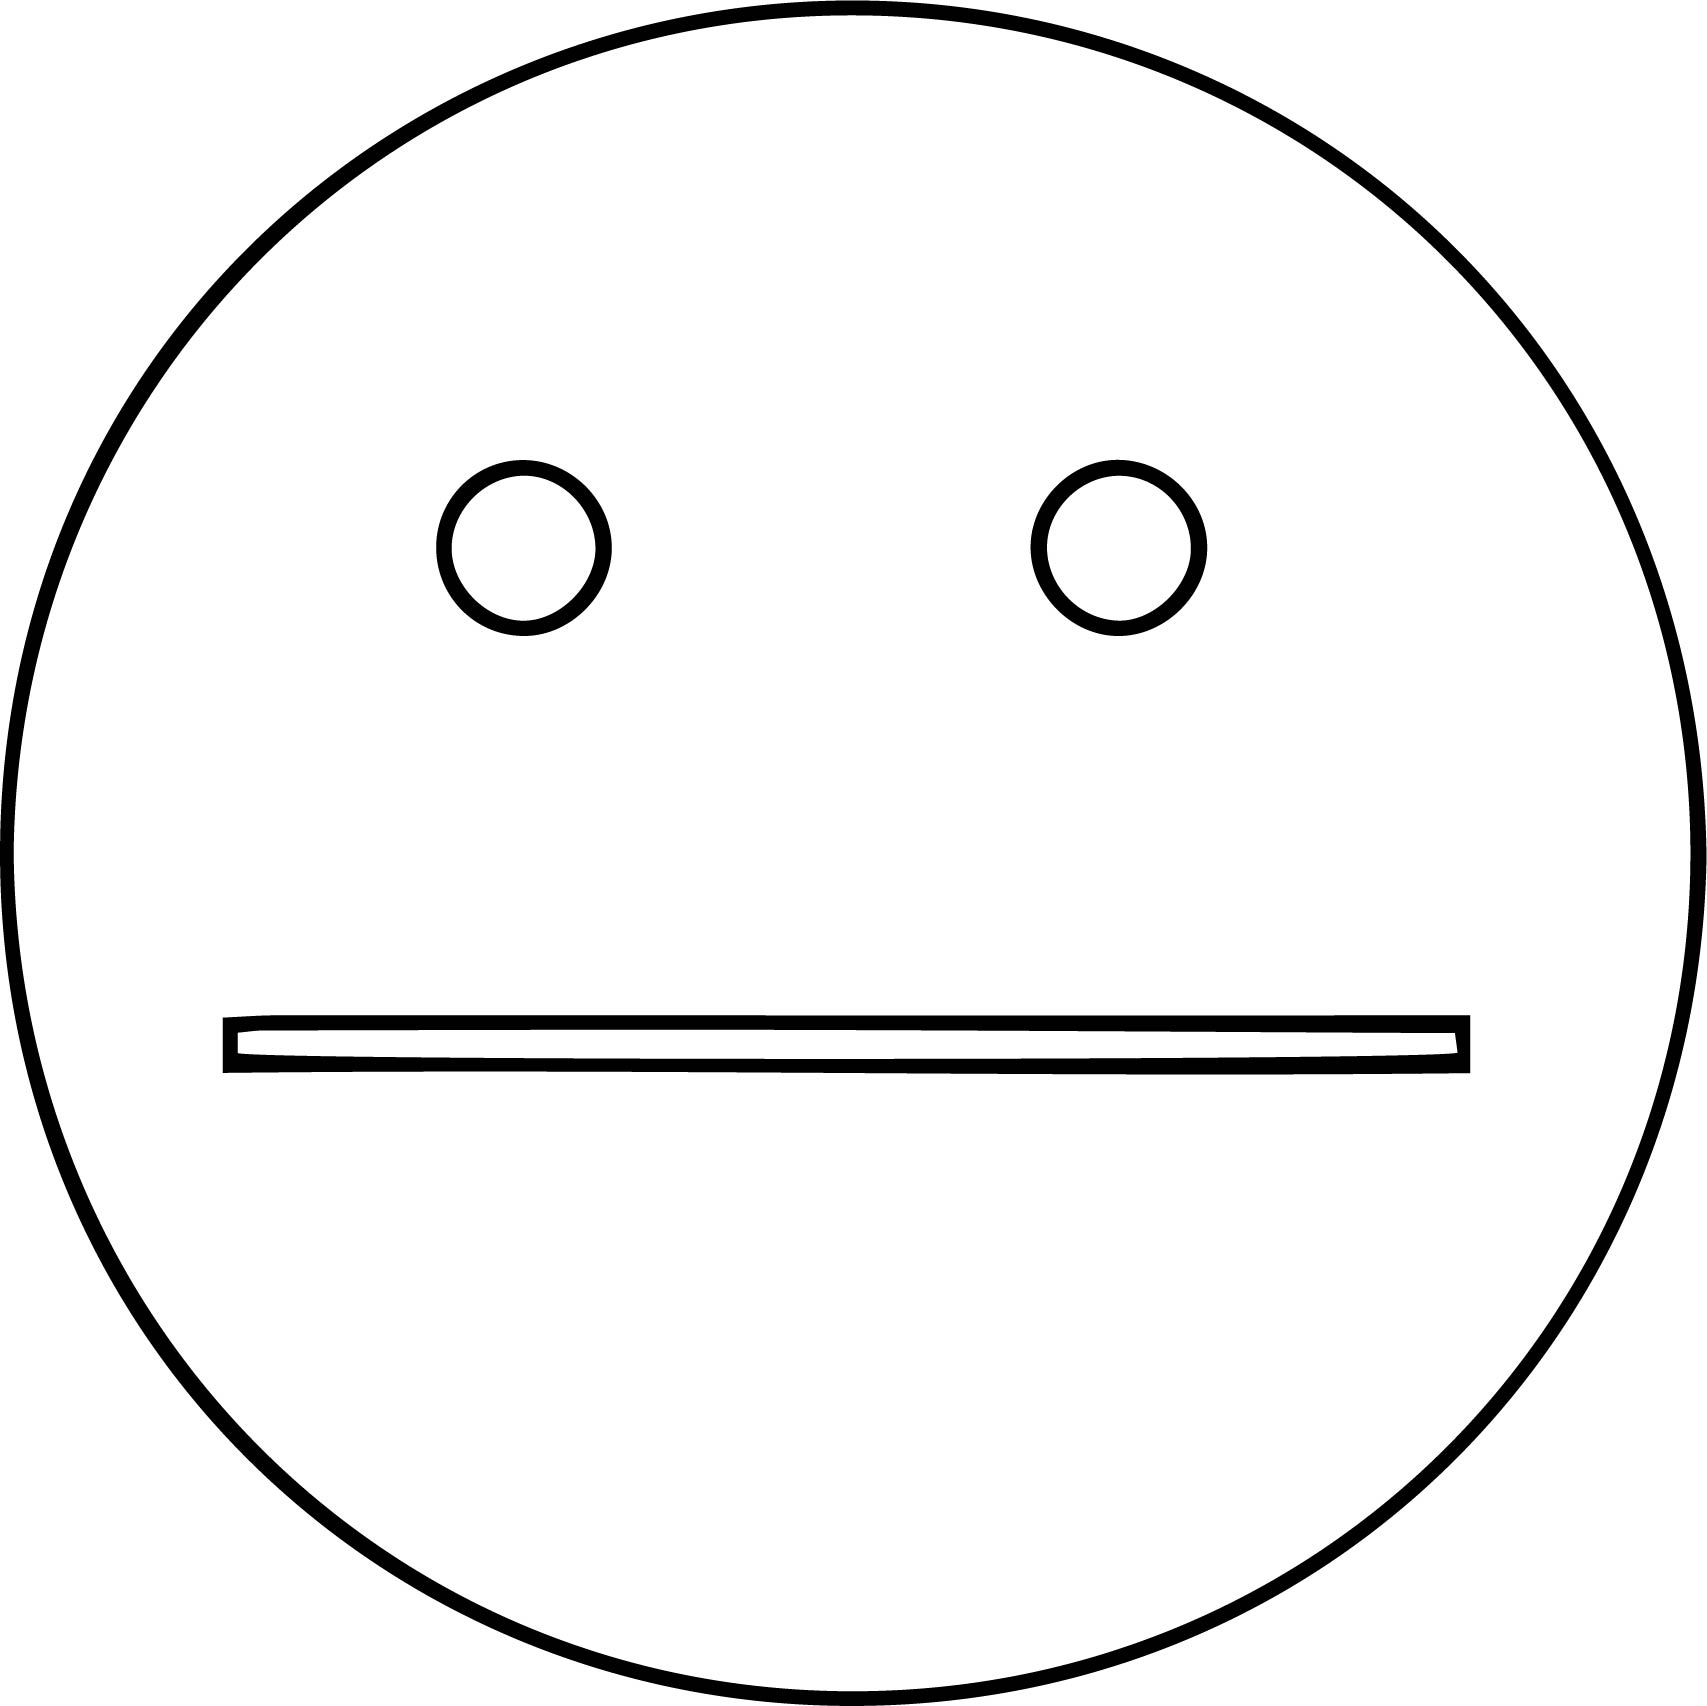 Frowny Face Black And White | Free download best Frowny Face Black ...